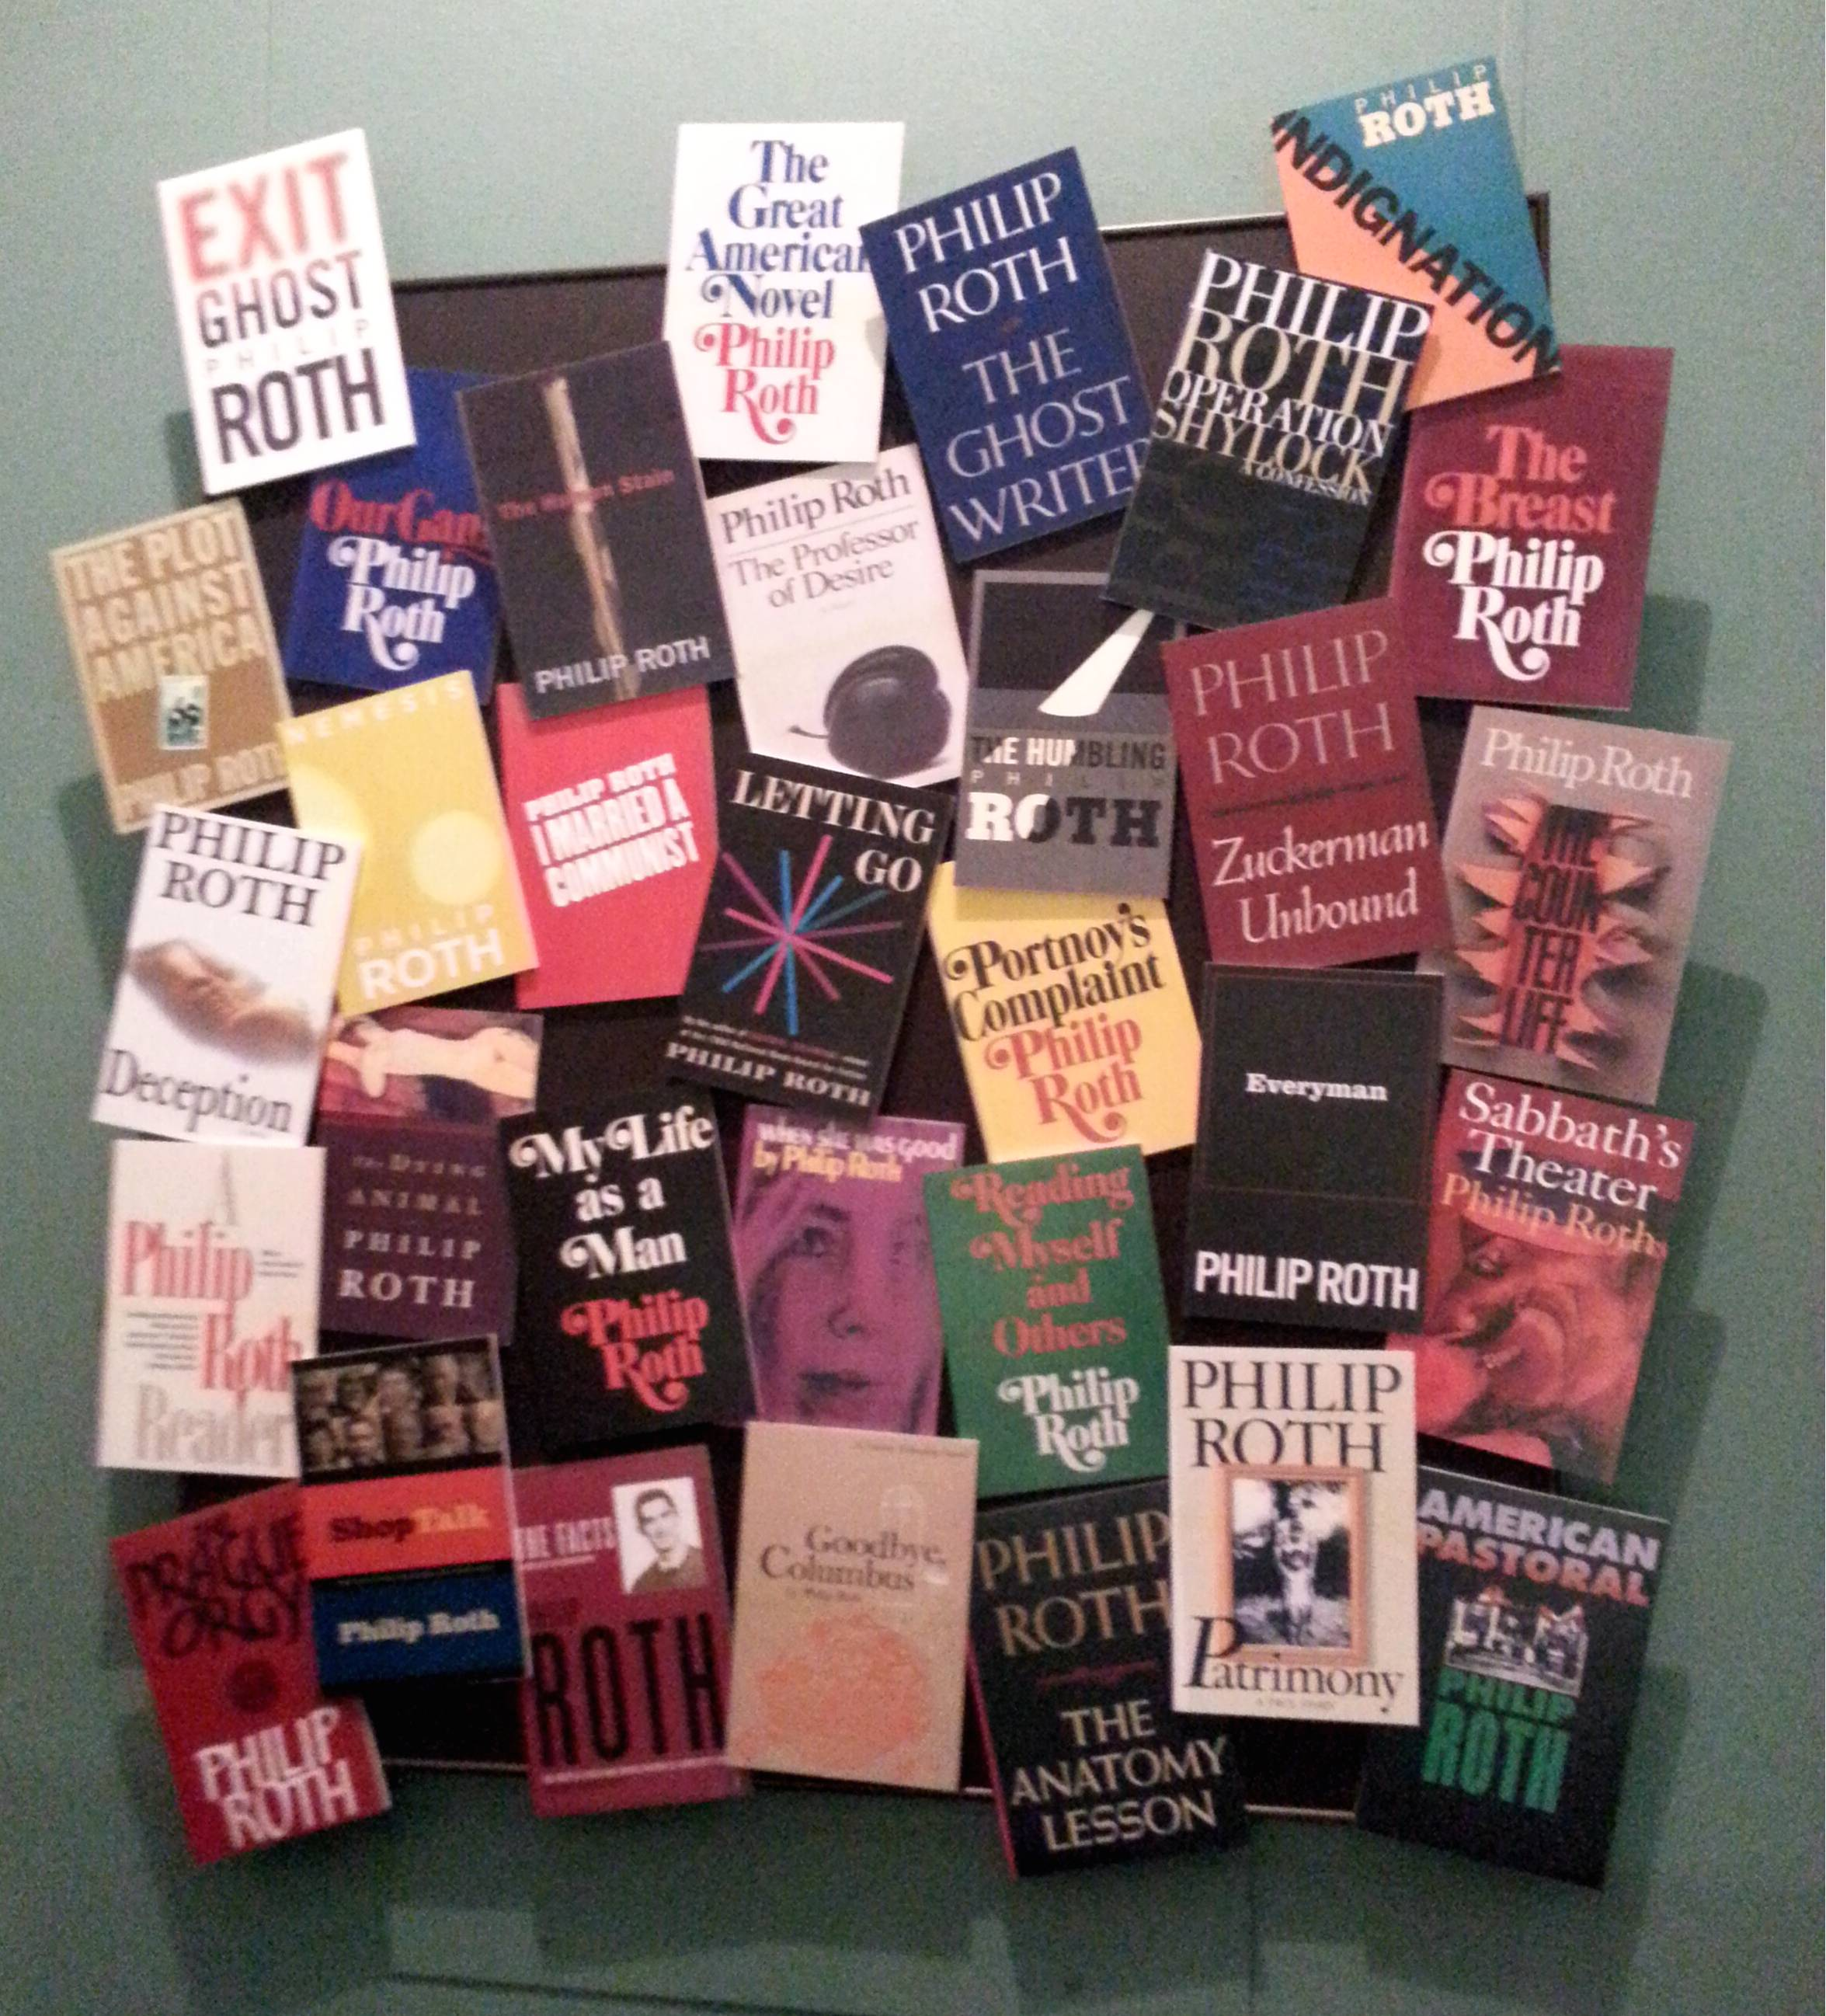 Philip Roth Book Cover Display